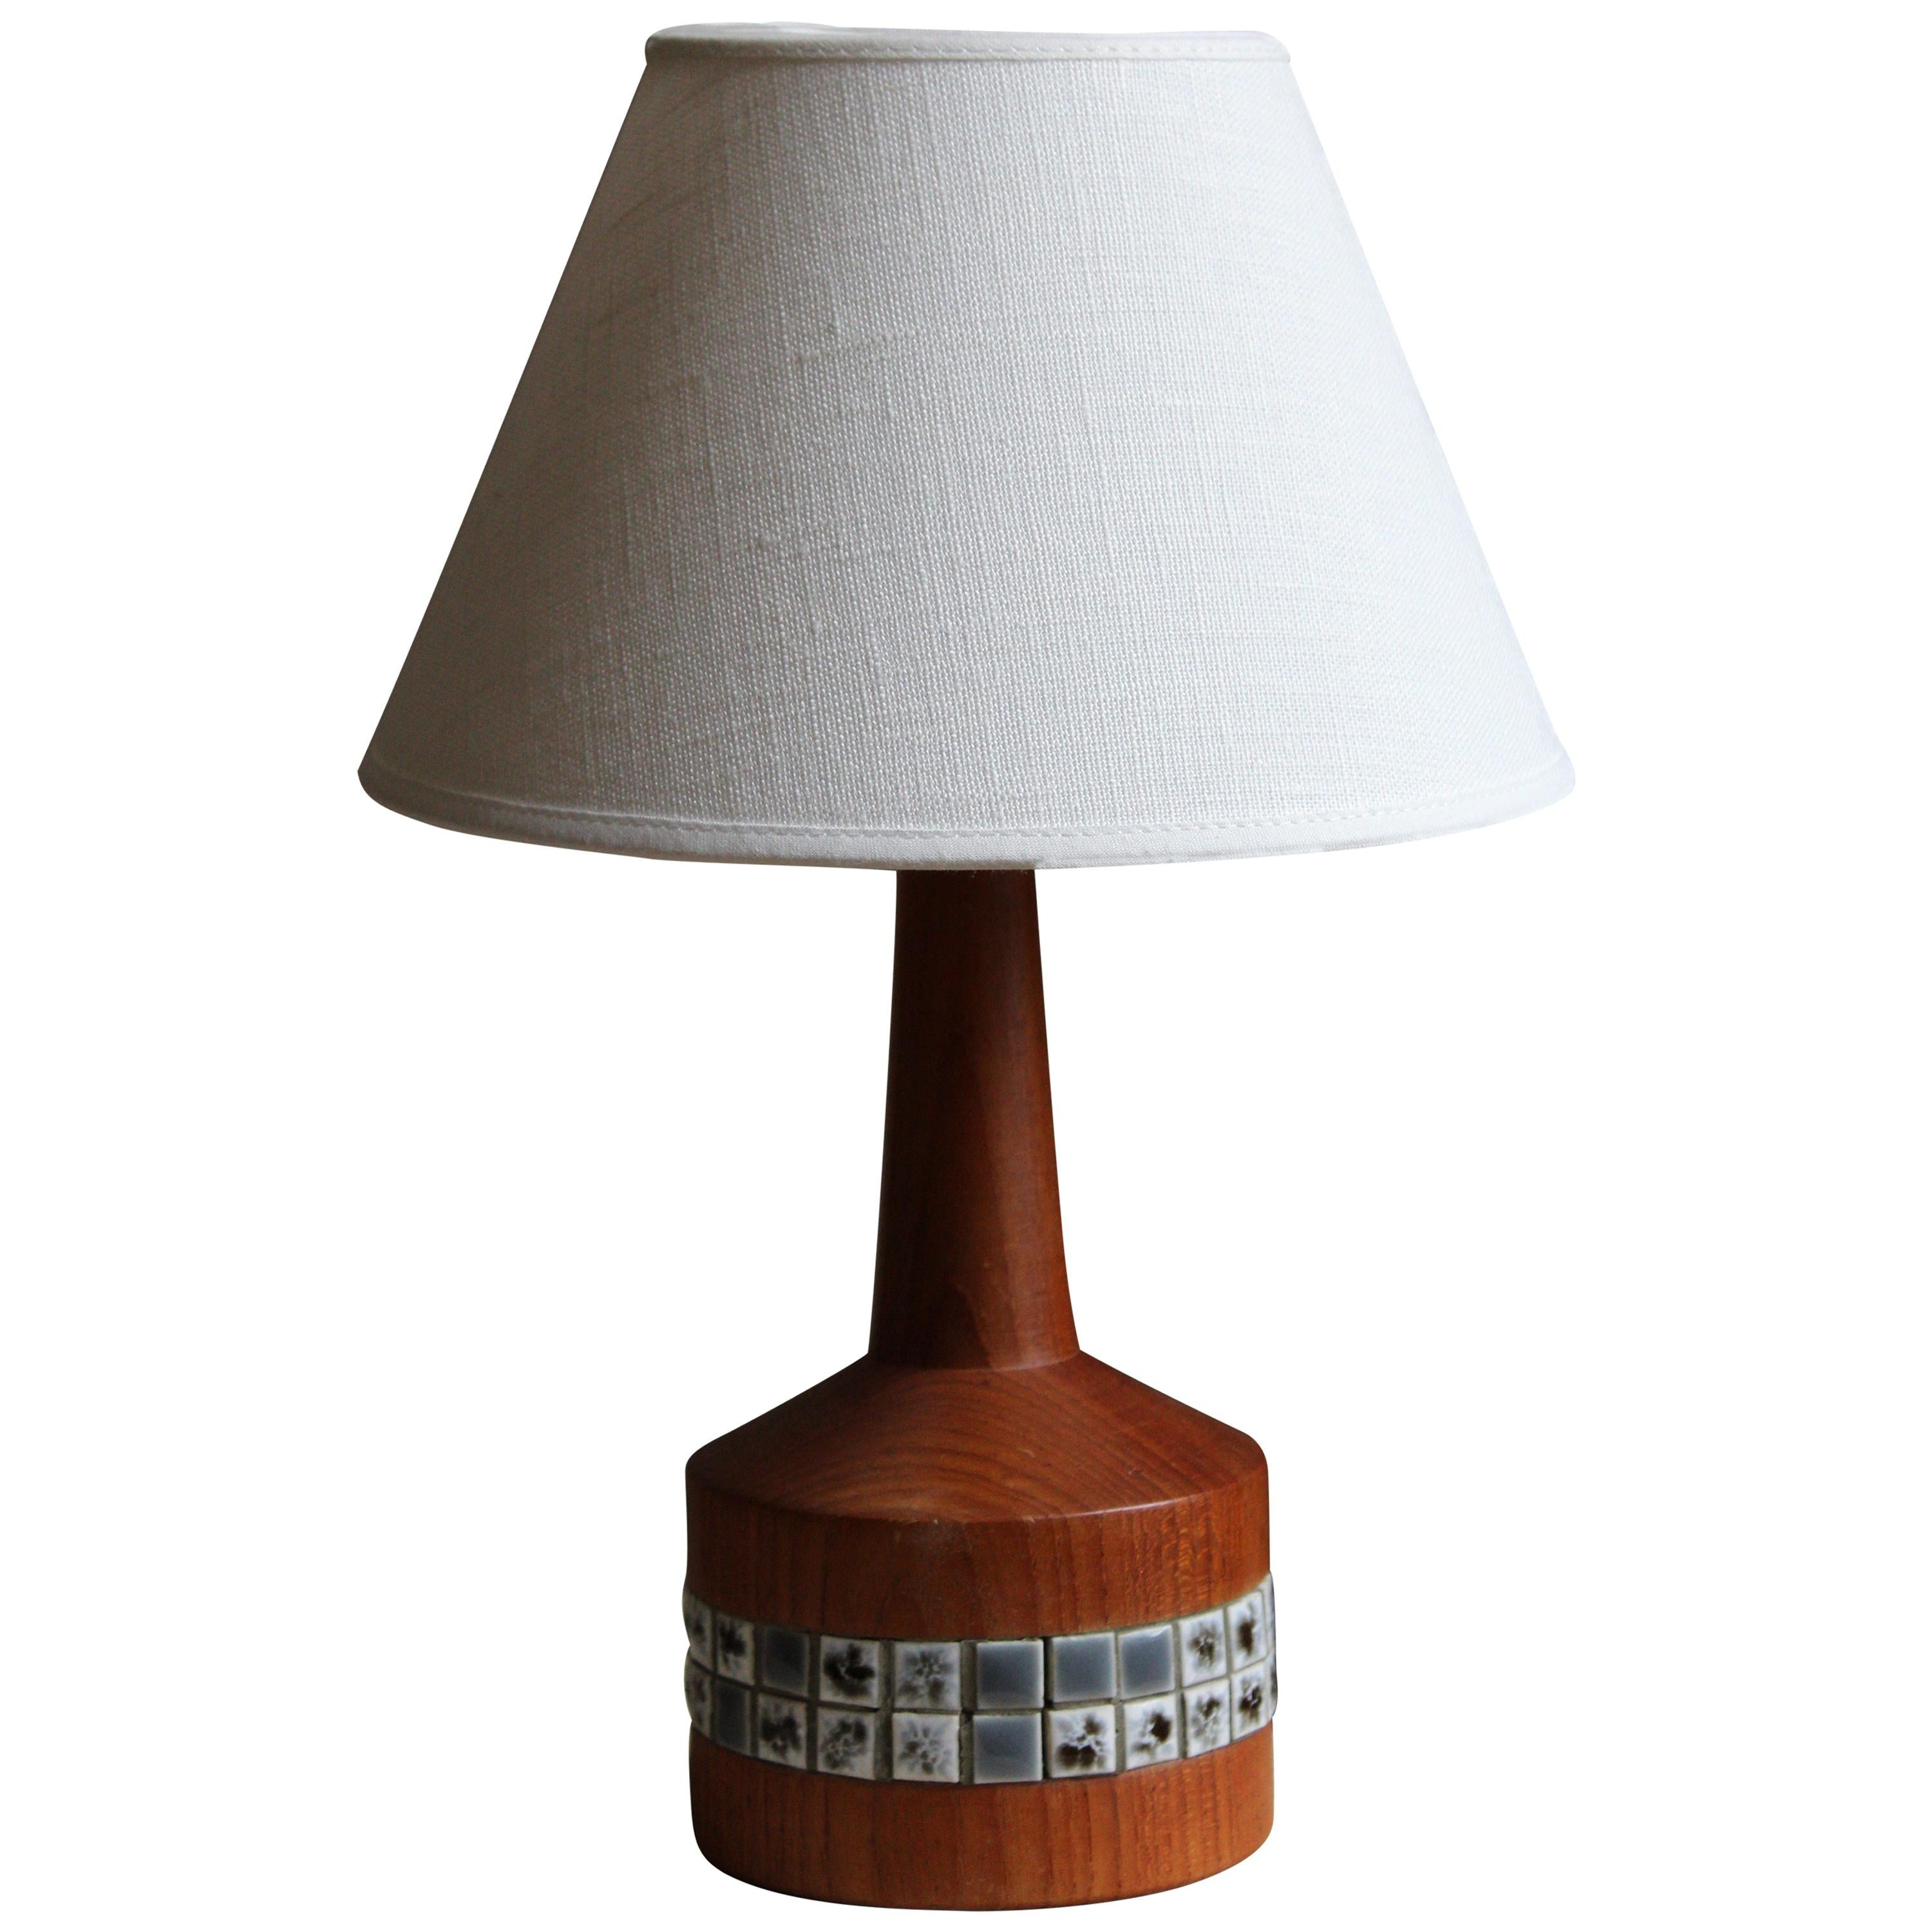 Swedish Designer, Table Lamp, Teak, Ceramic Tile, Linen, Sweden, 1950s